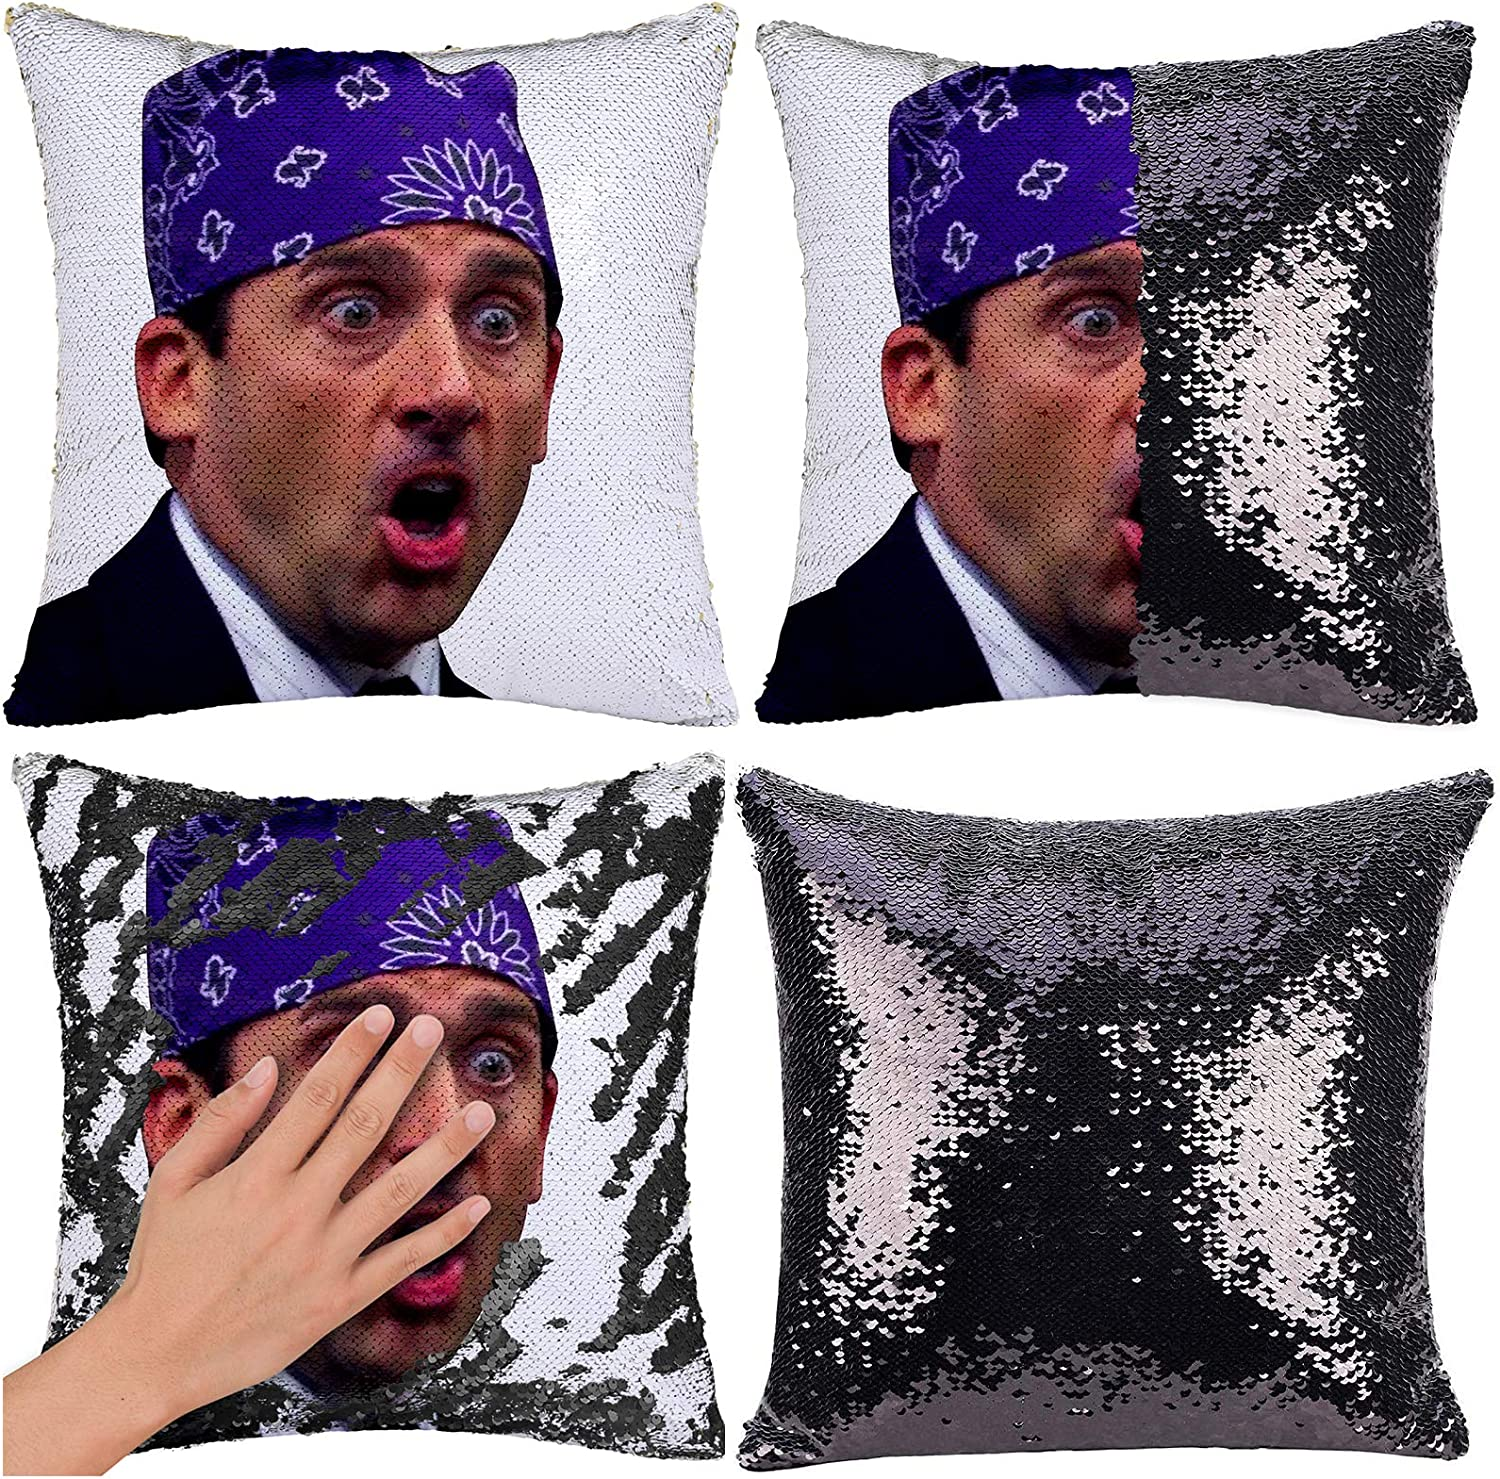 """RongDX Funny The Office Prison Mike Flip Sequin Pillow Case Throw Pillow Covers Magic Reversible Mermaid Pillow Cases Cushion Cover Decorative Pillowcase(16""""x16"""") (Prison Mike G1:Black)"""